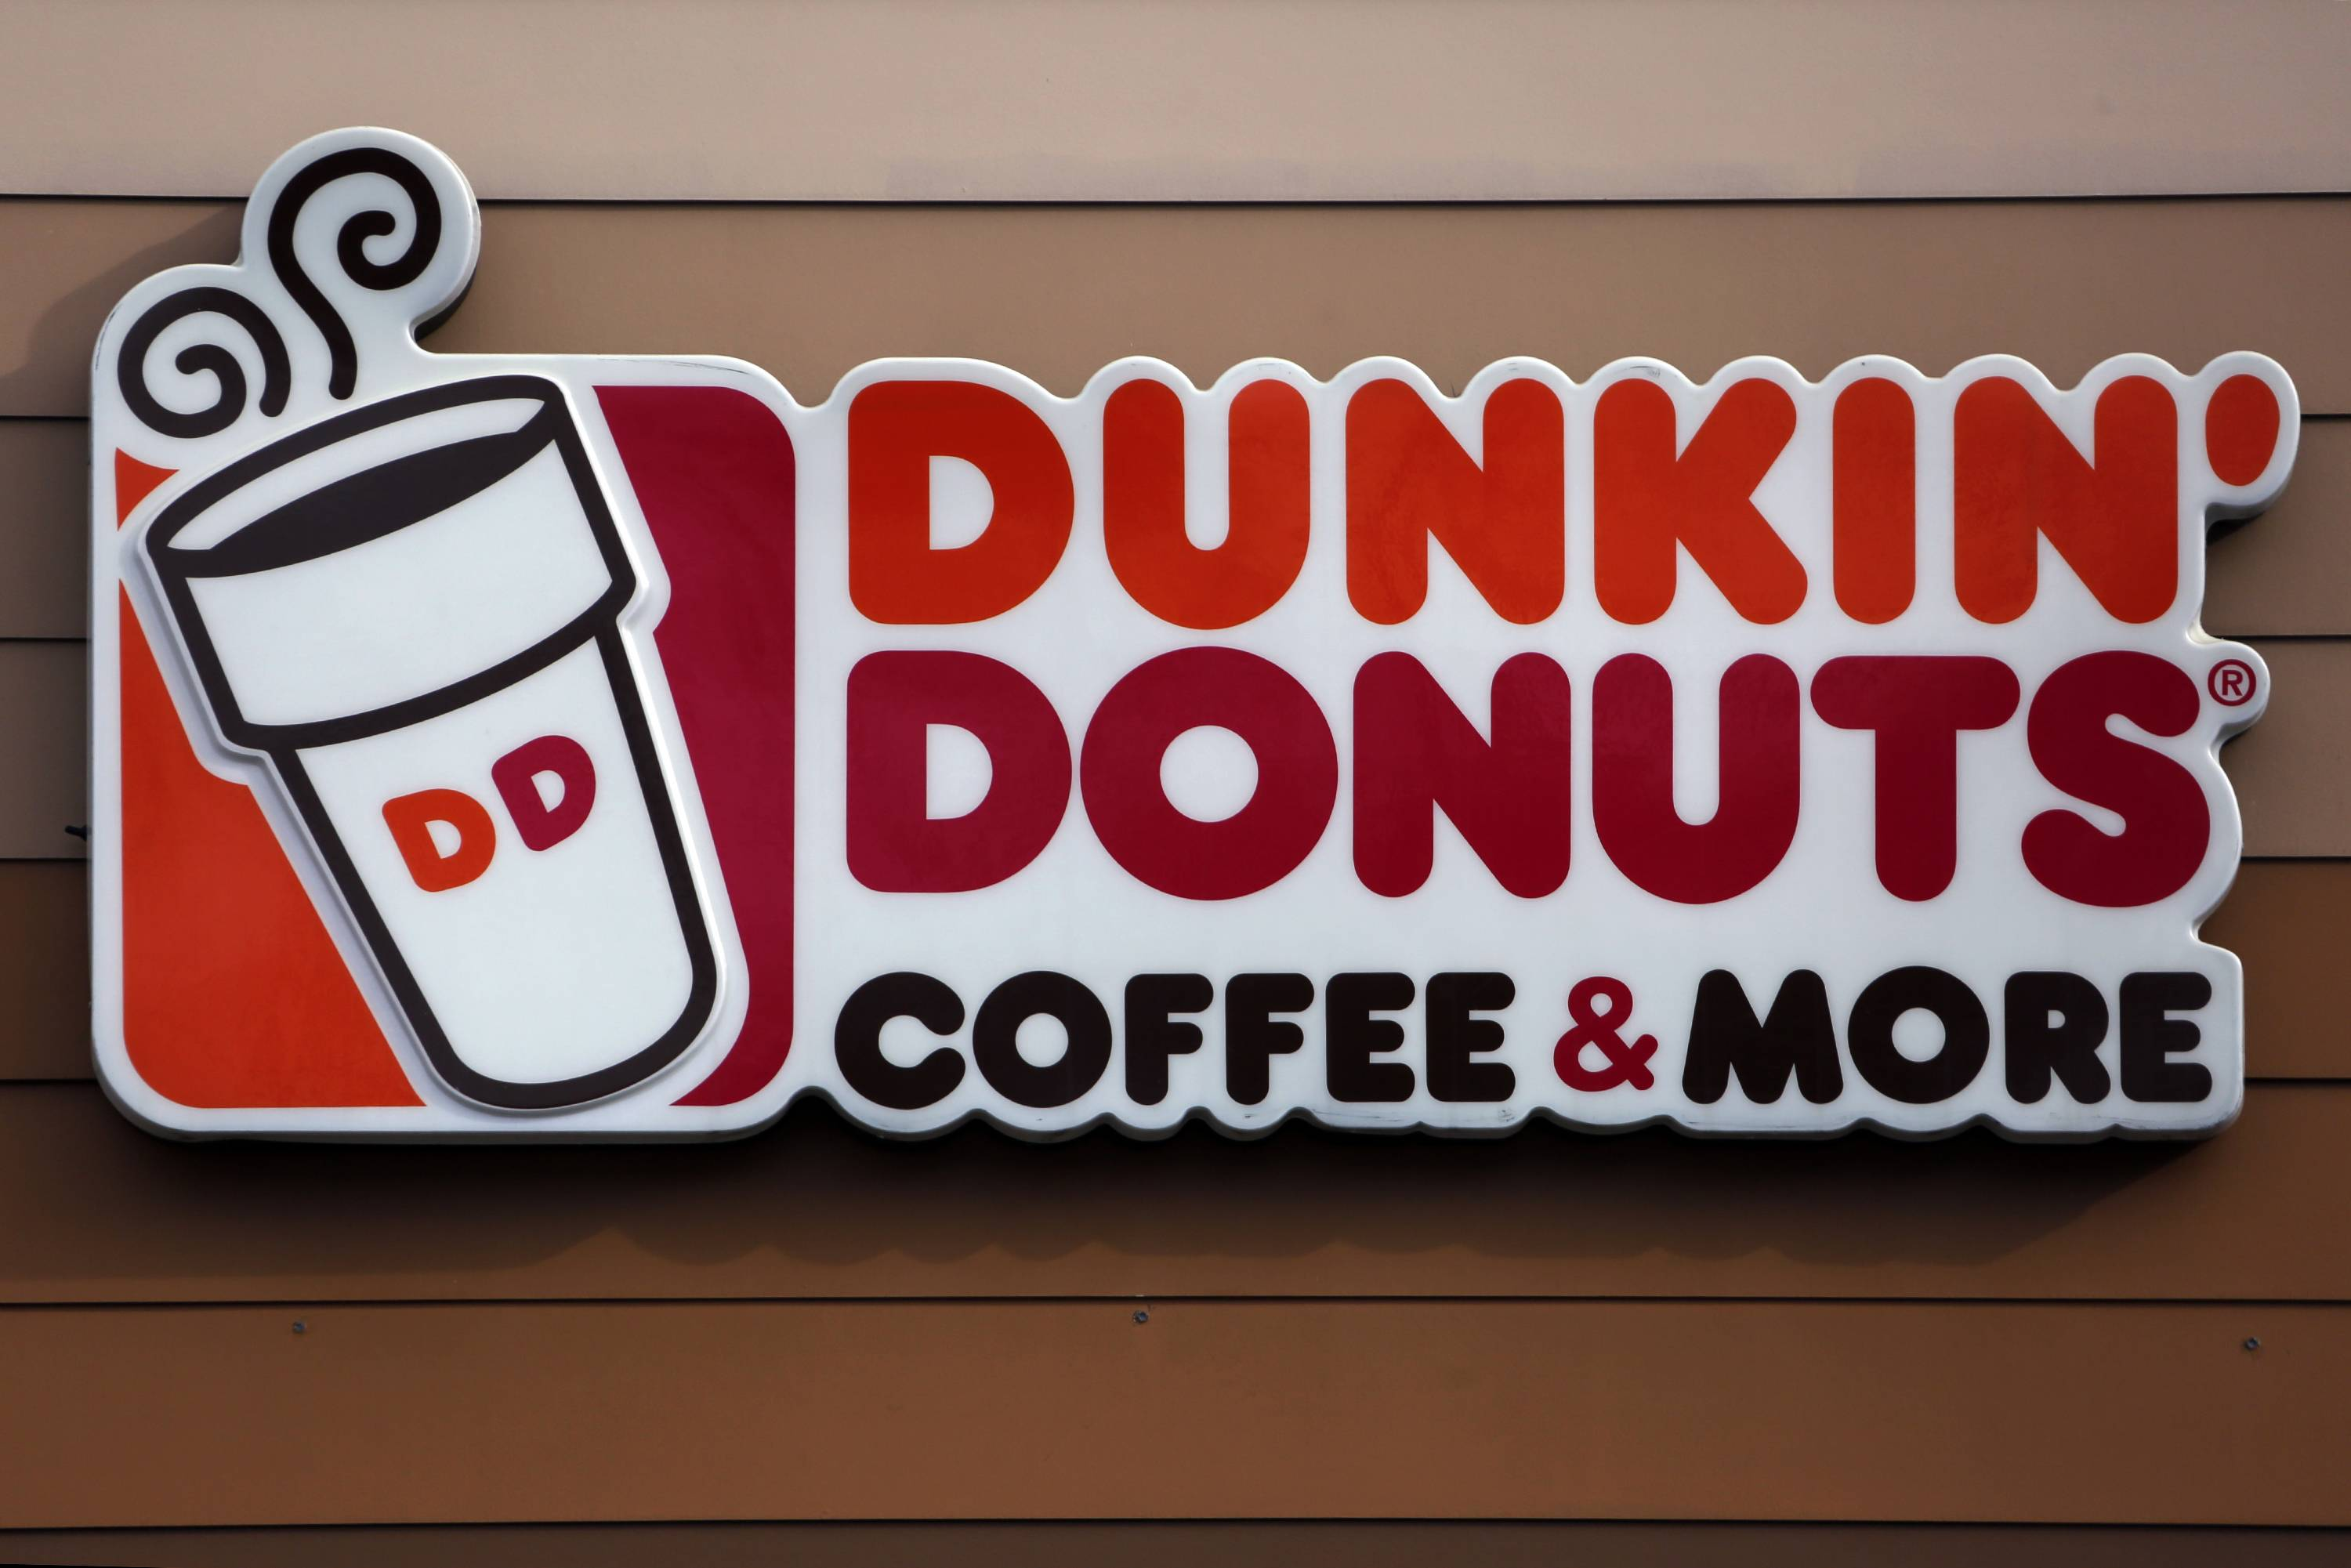 Buffalo Grove officials are considering plans for a new stand-alone Dunkin' Donuts at the Spoerlein Commons shopping center.